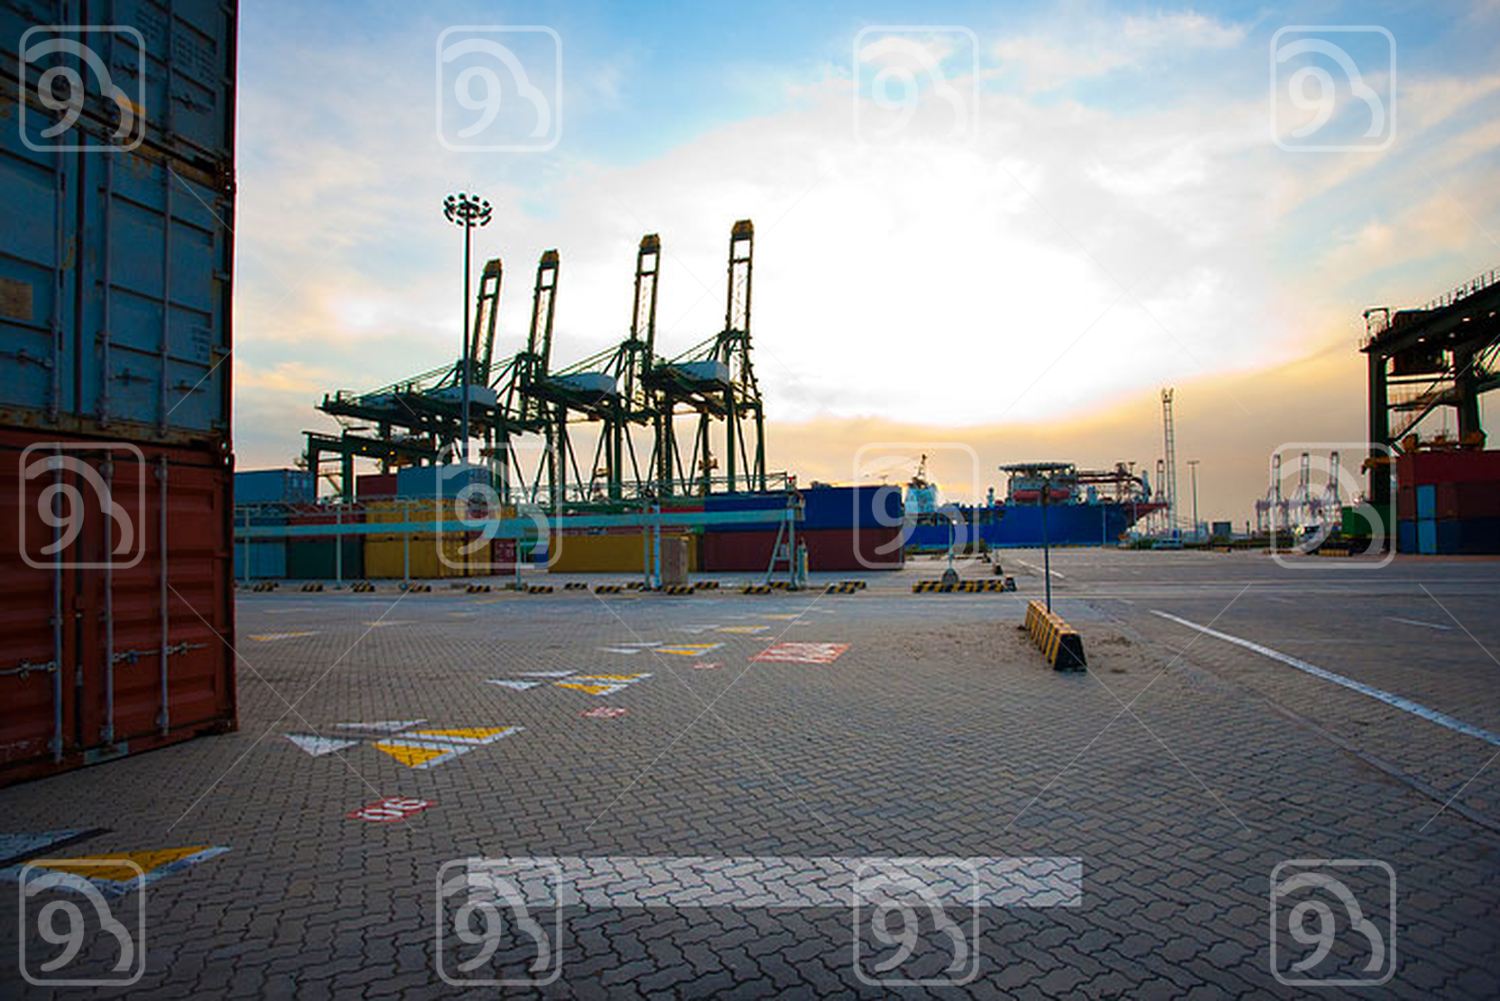 View of cranes, containers and cargo ships at dusk